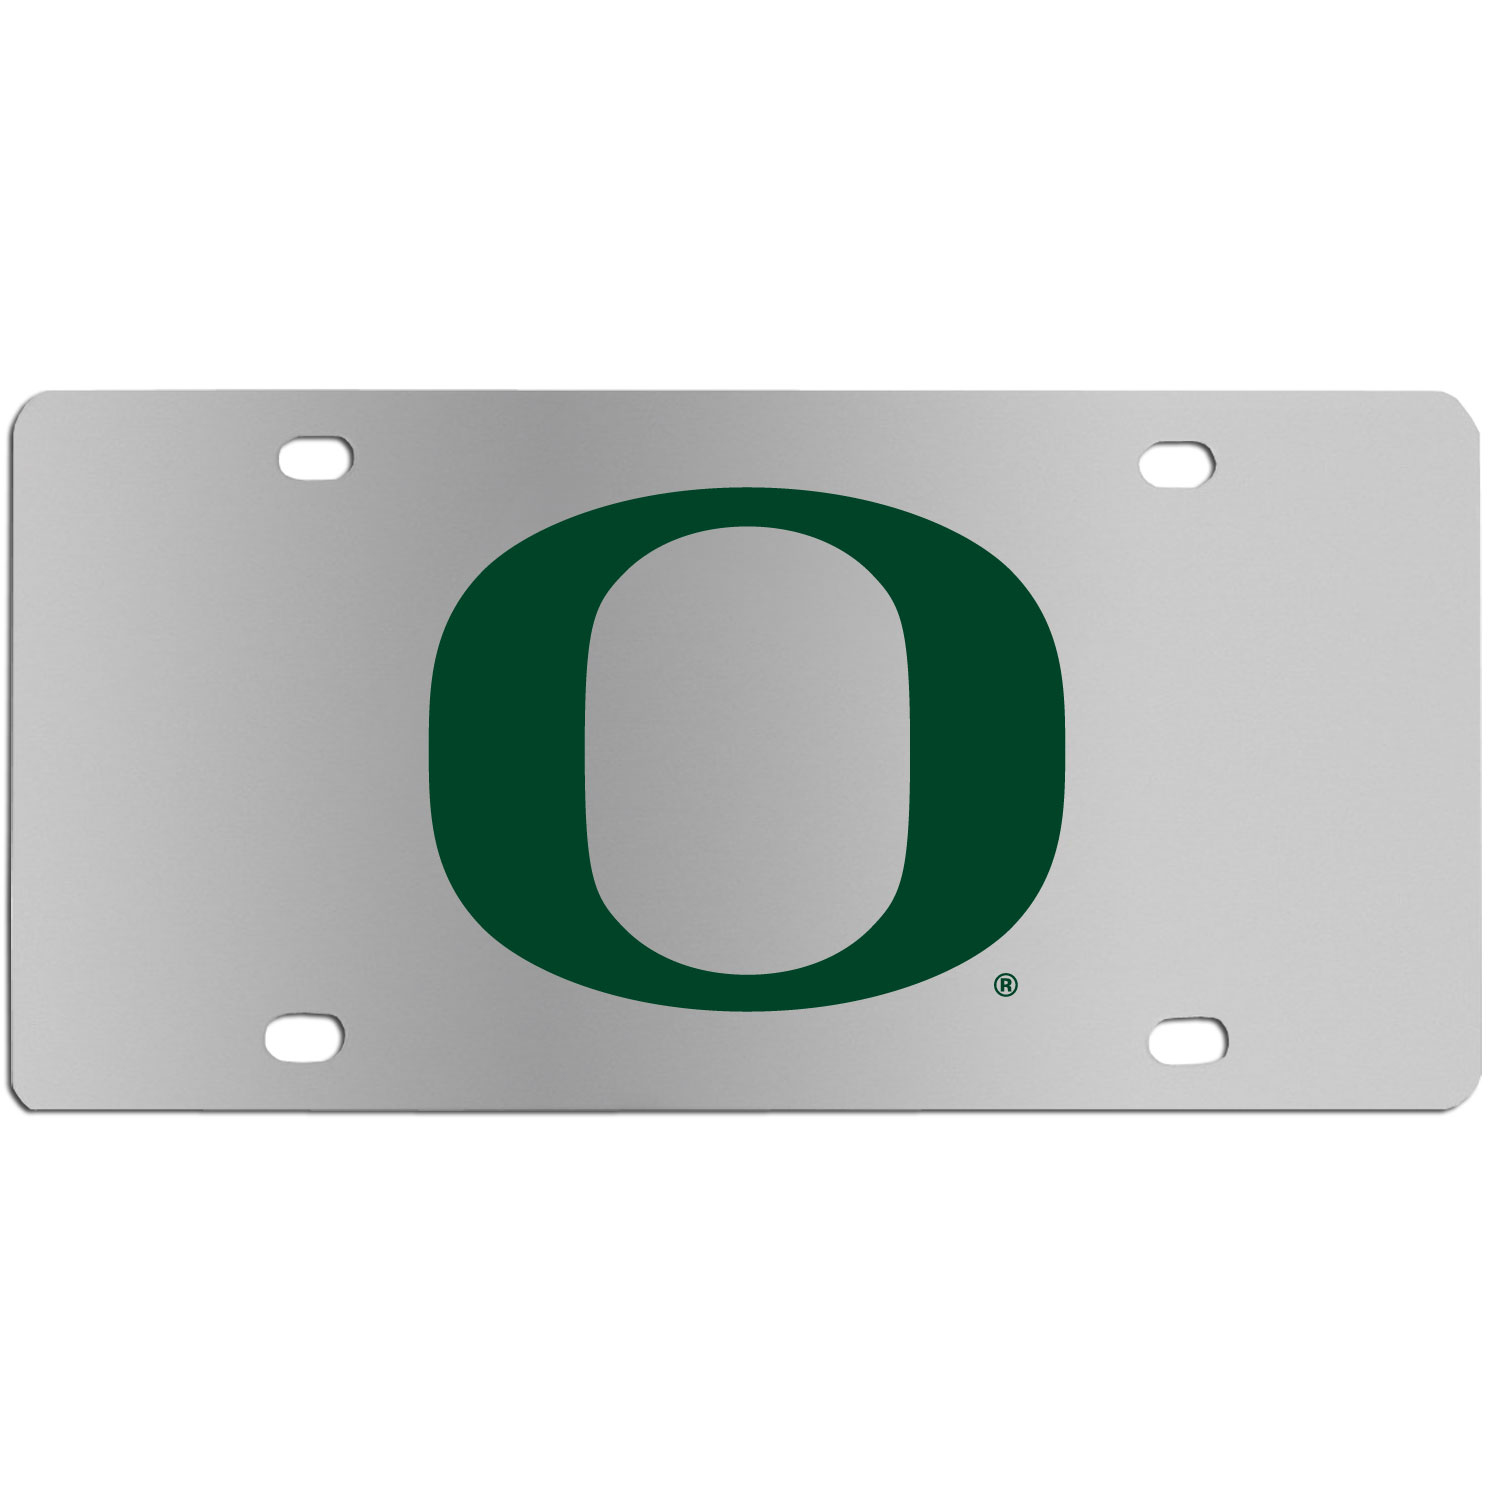 Oregon Ducks Steel License Plate Wall Plaque - This high-quality stainless steel license plate features a detailed team logo on a the polished surface. The attractive plate is perfect for wall mounting in your home or office to become the perfect die-hard Oregon Ducks fan decor.